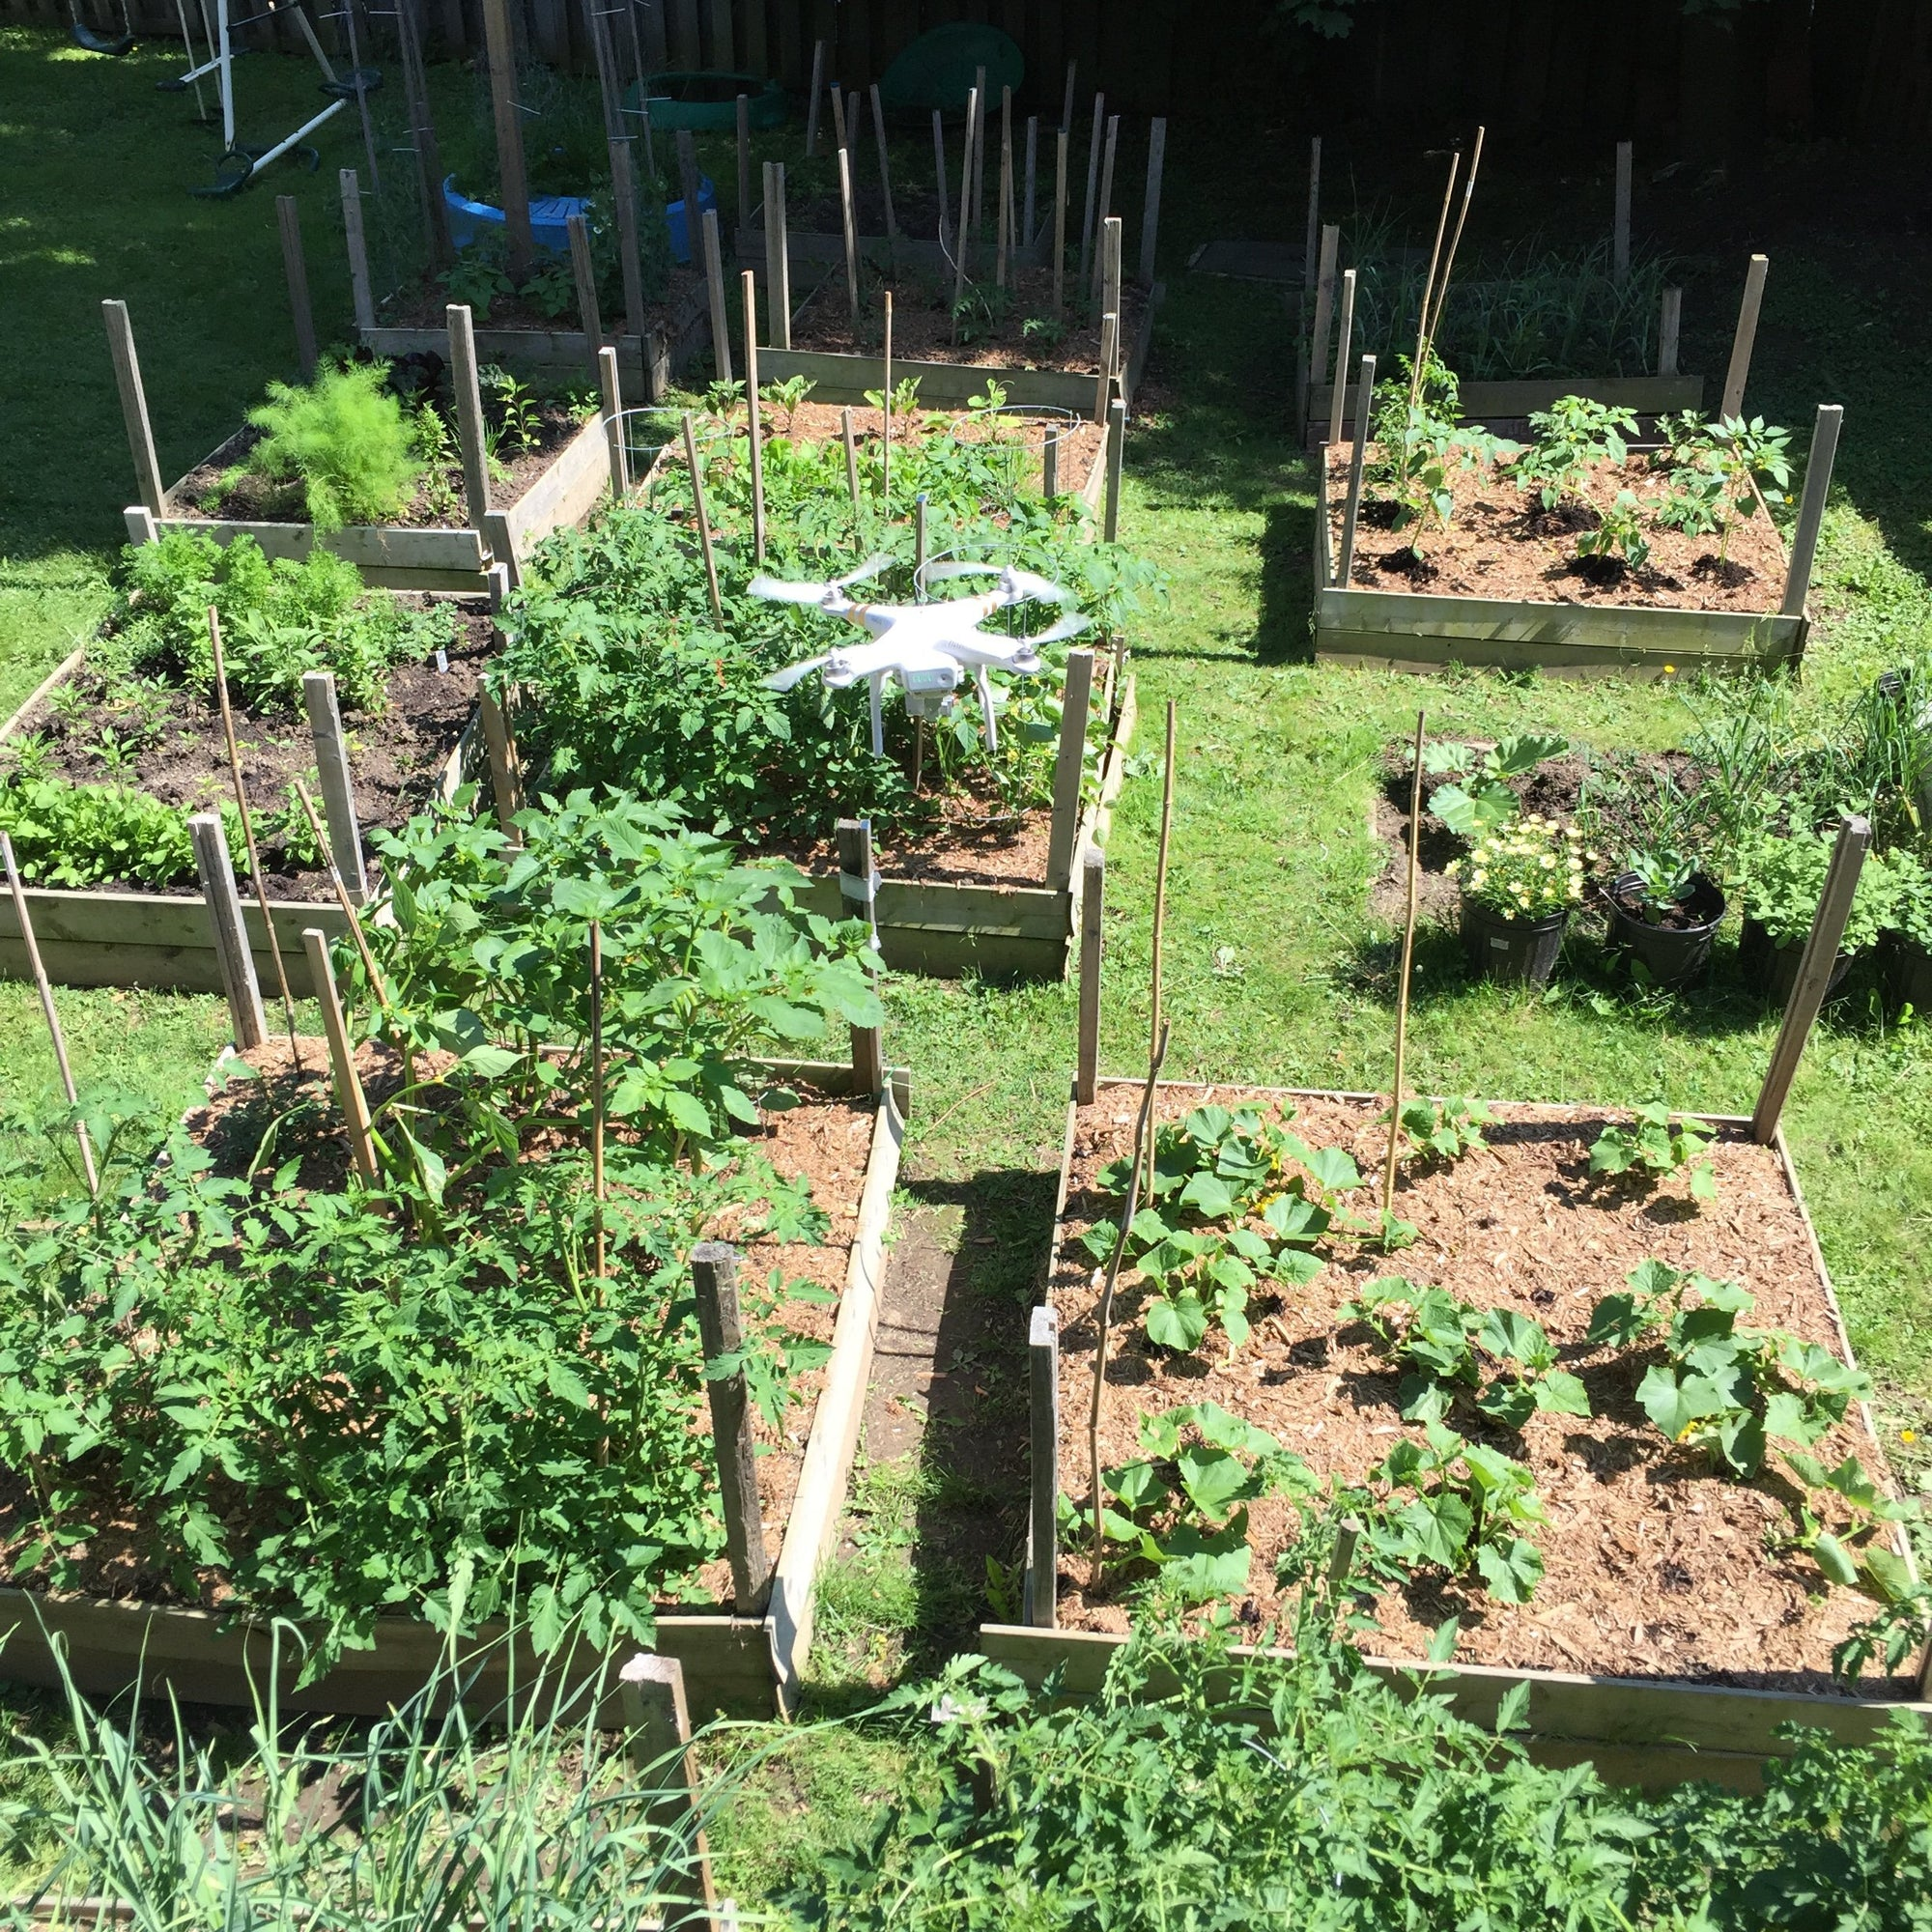 Is it time to rethink Gardening in your city? | Healthy Garden Co